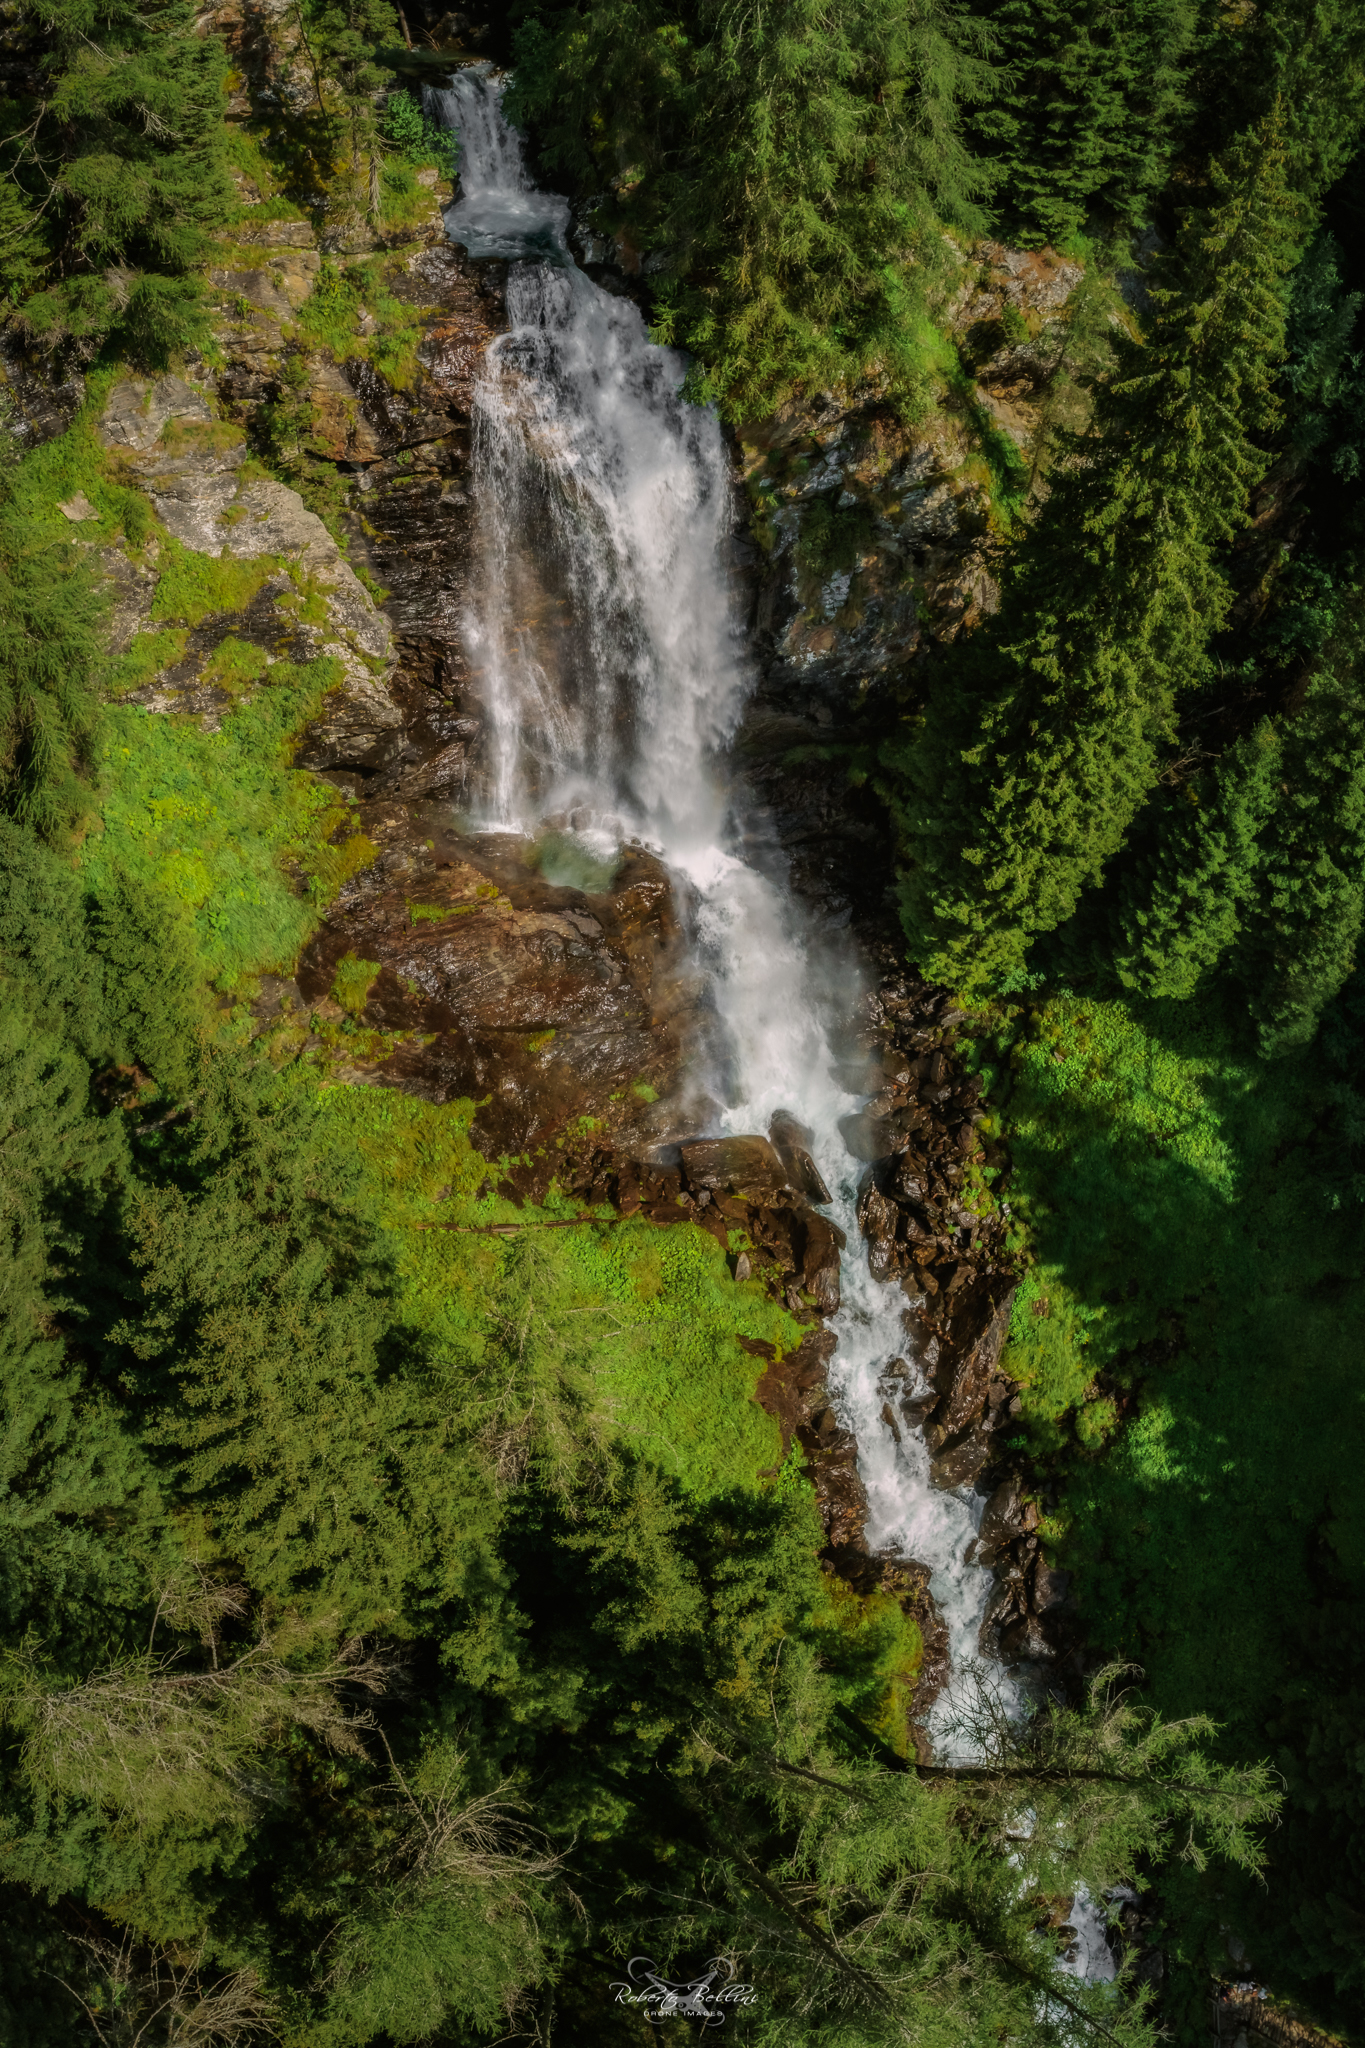 P4P_DJI_0112-Pano-Modifica